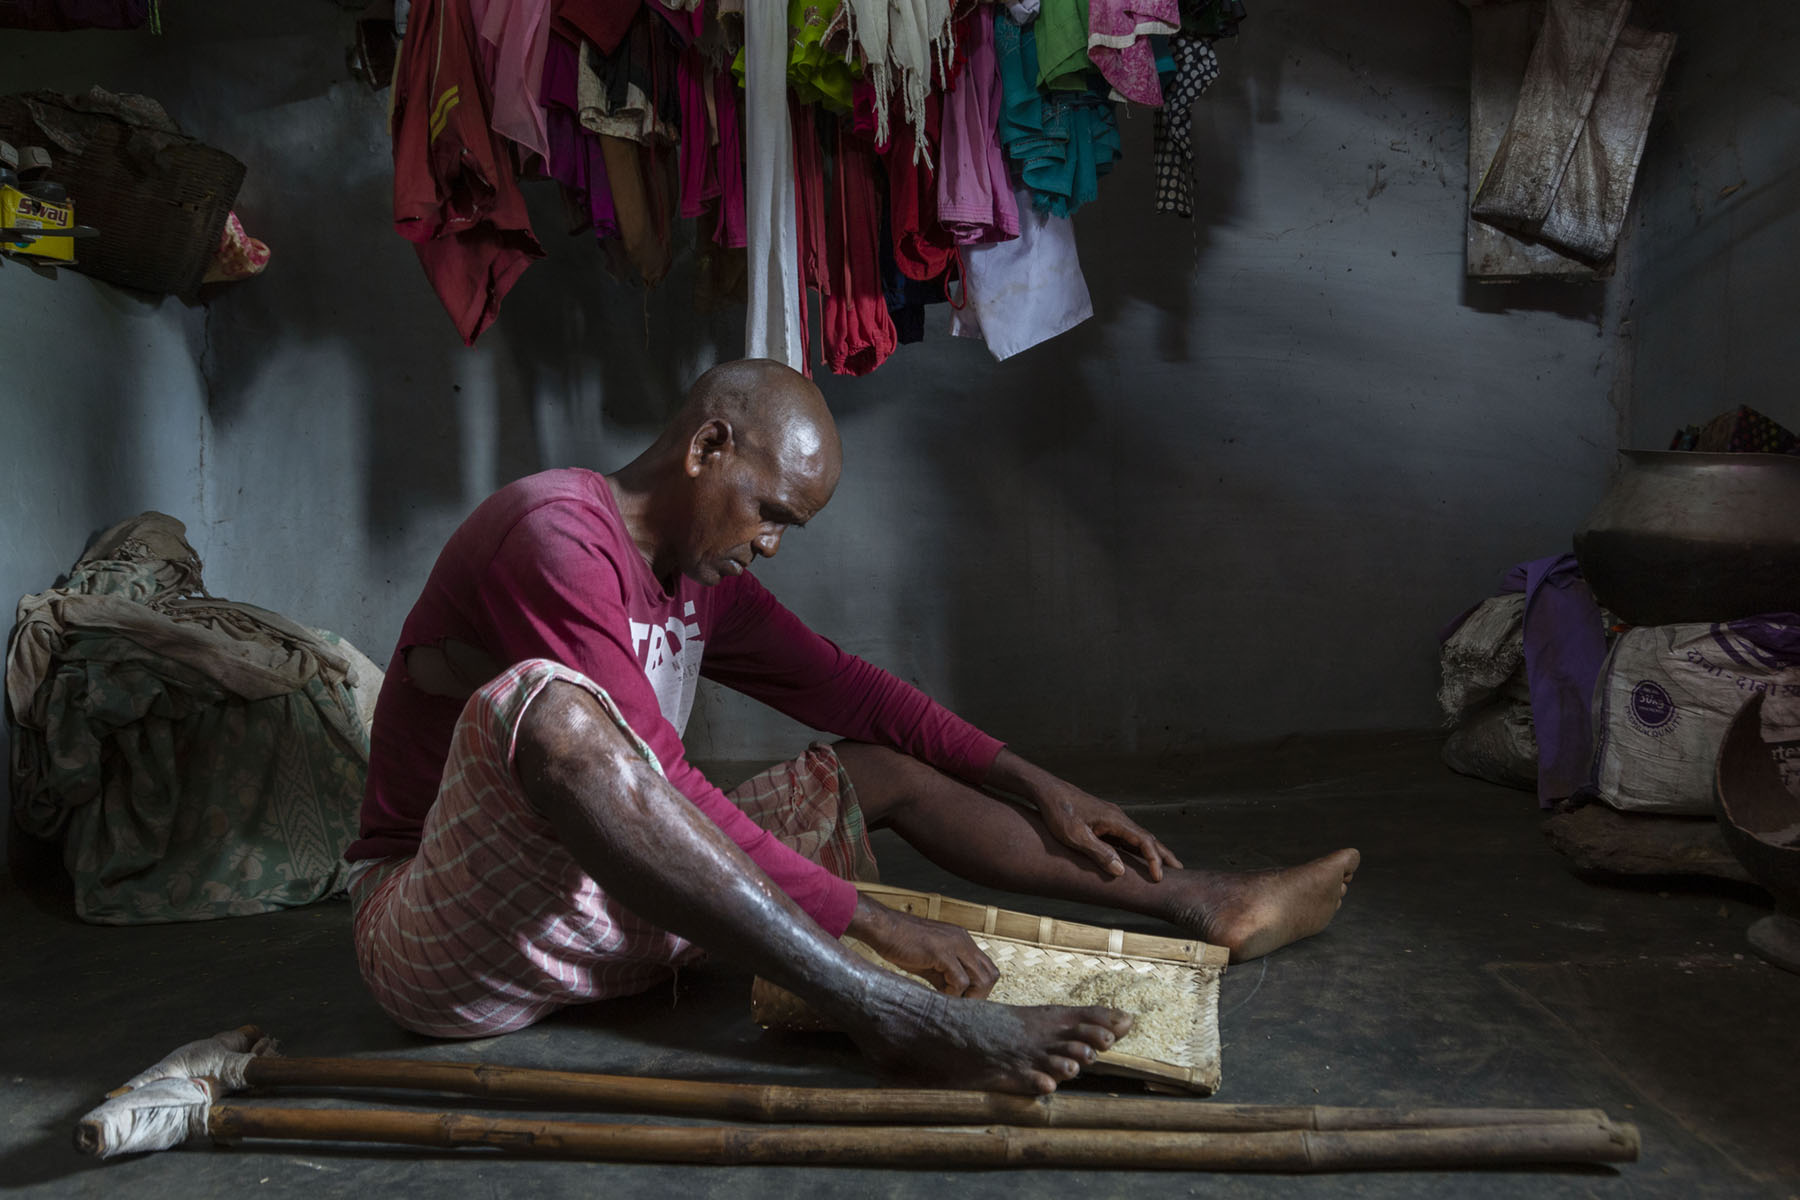 Suren wearing a maroon full-sleeved T-shirt and checked towel sits on the dark grey floor of a room with dark grey walls. His legs are stretched out and his crutches lie flat alongside him. Between his feet there is a woven bamboo tray filled with raw rice. He is looking down into the tray and picking out dirt from the rice. Just behind him, several dry clothes are hanging; there are men and women's clothes, mainly in shades of red and pink, bunched together.